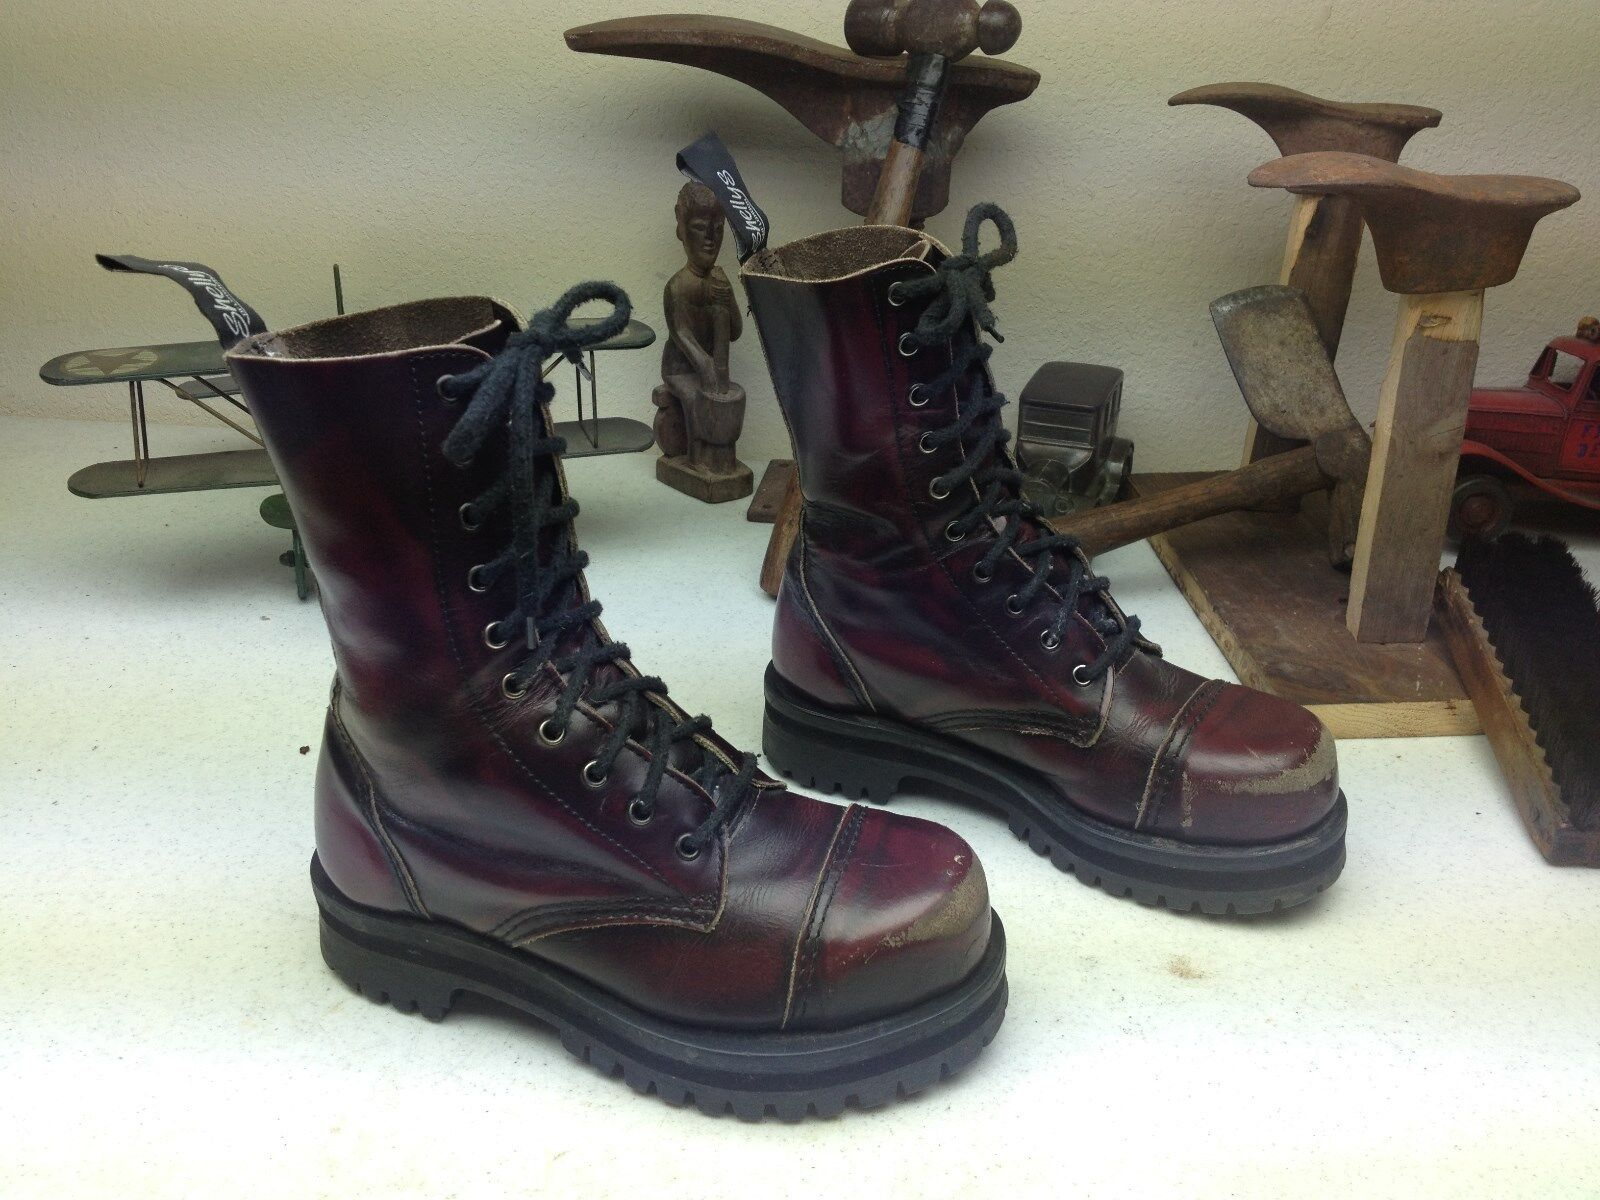 SHELLY'S OF LONDON BURGUNDY DISTRESSED LEATHER LEATHER LEATHER COMBAT LACE UP ARMY Stiefel 5-6 M 320f52